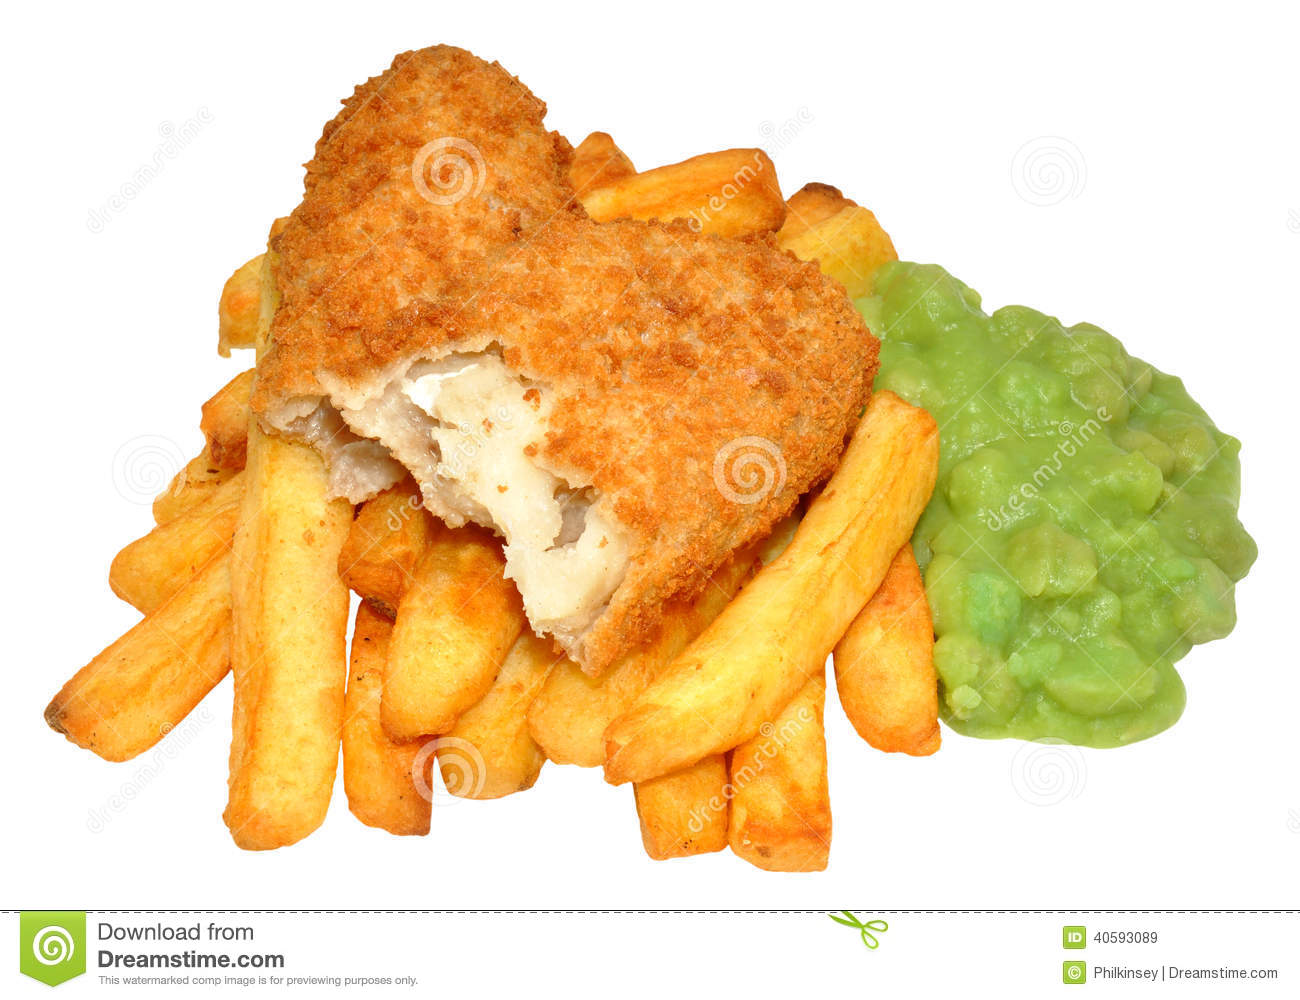 Fish And Chips With Mushy Peas Stock Image - Image: 40593089